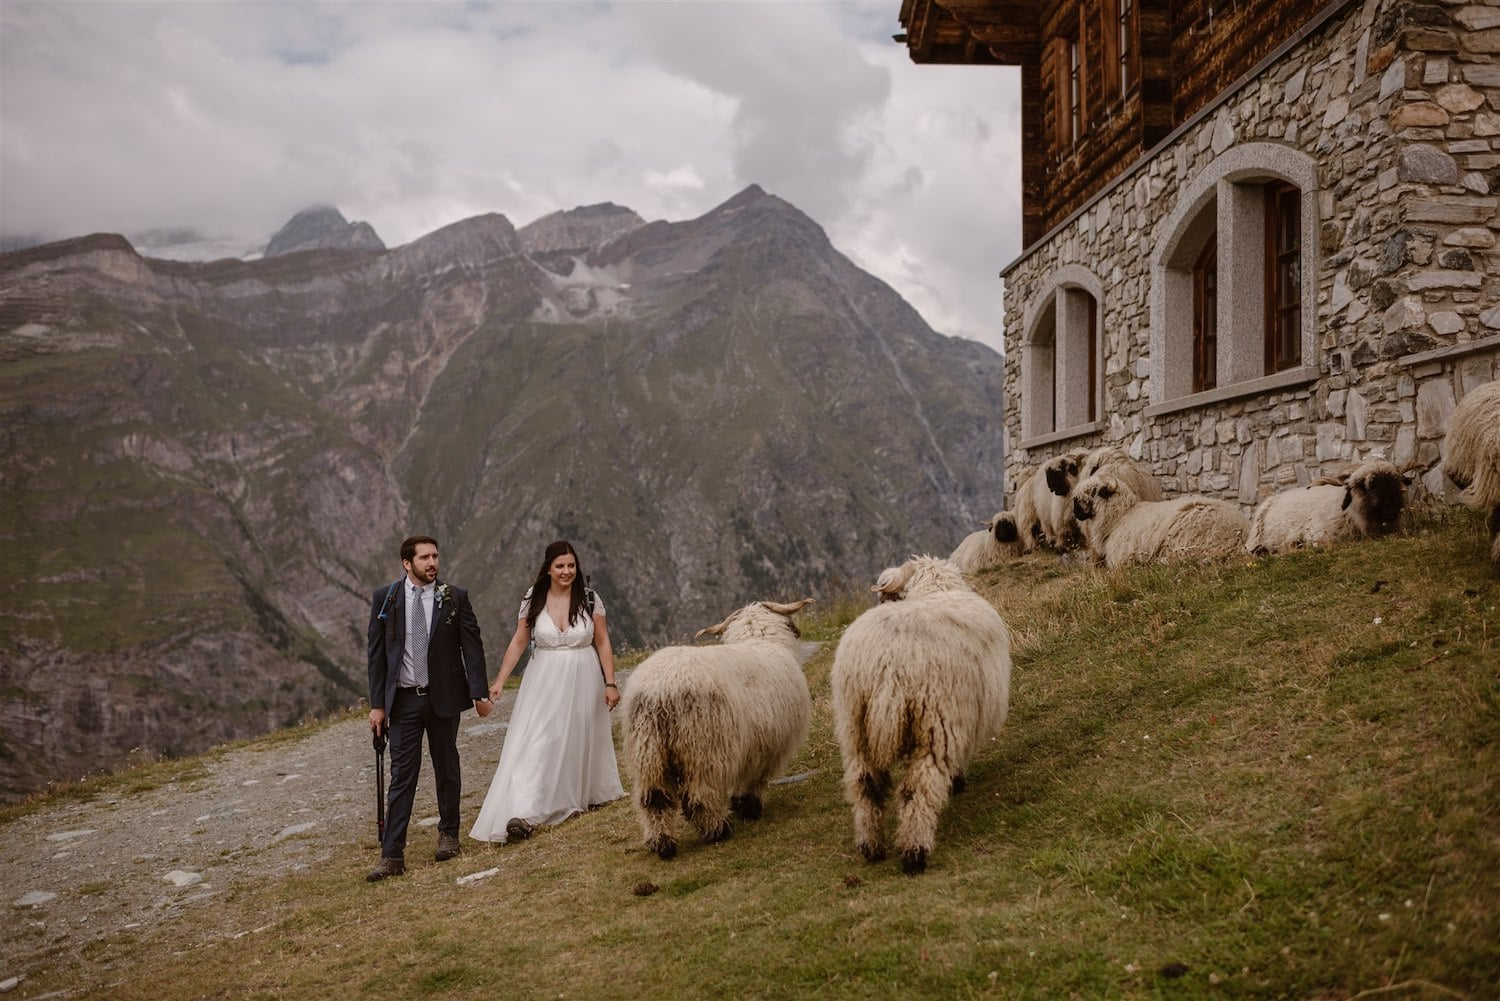 Couple getting married in the Swiss mountains